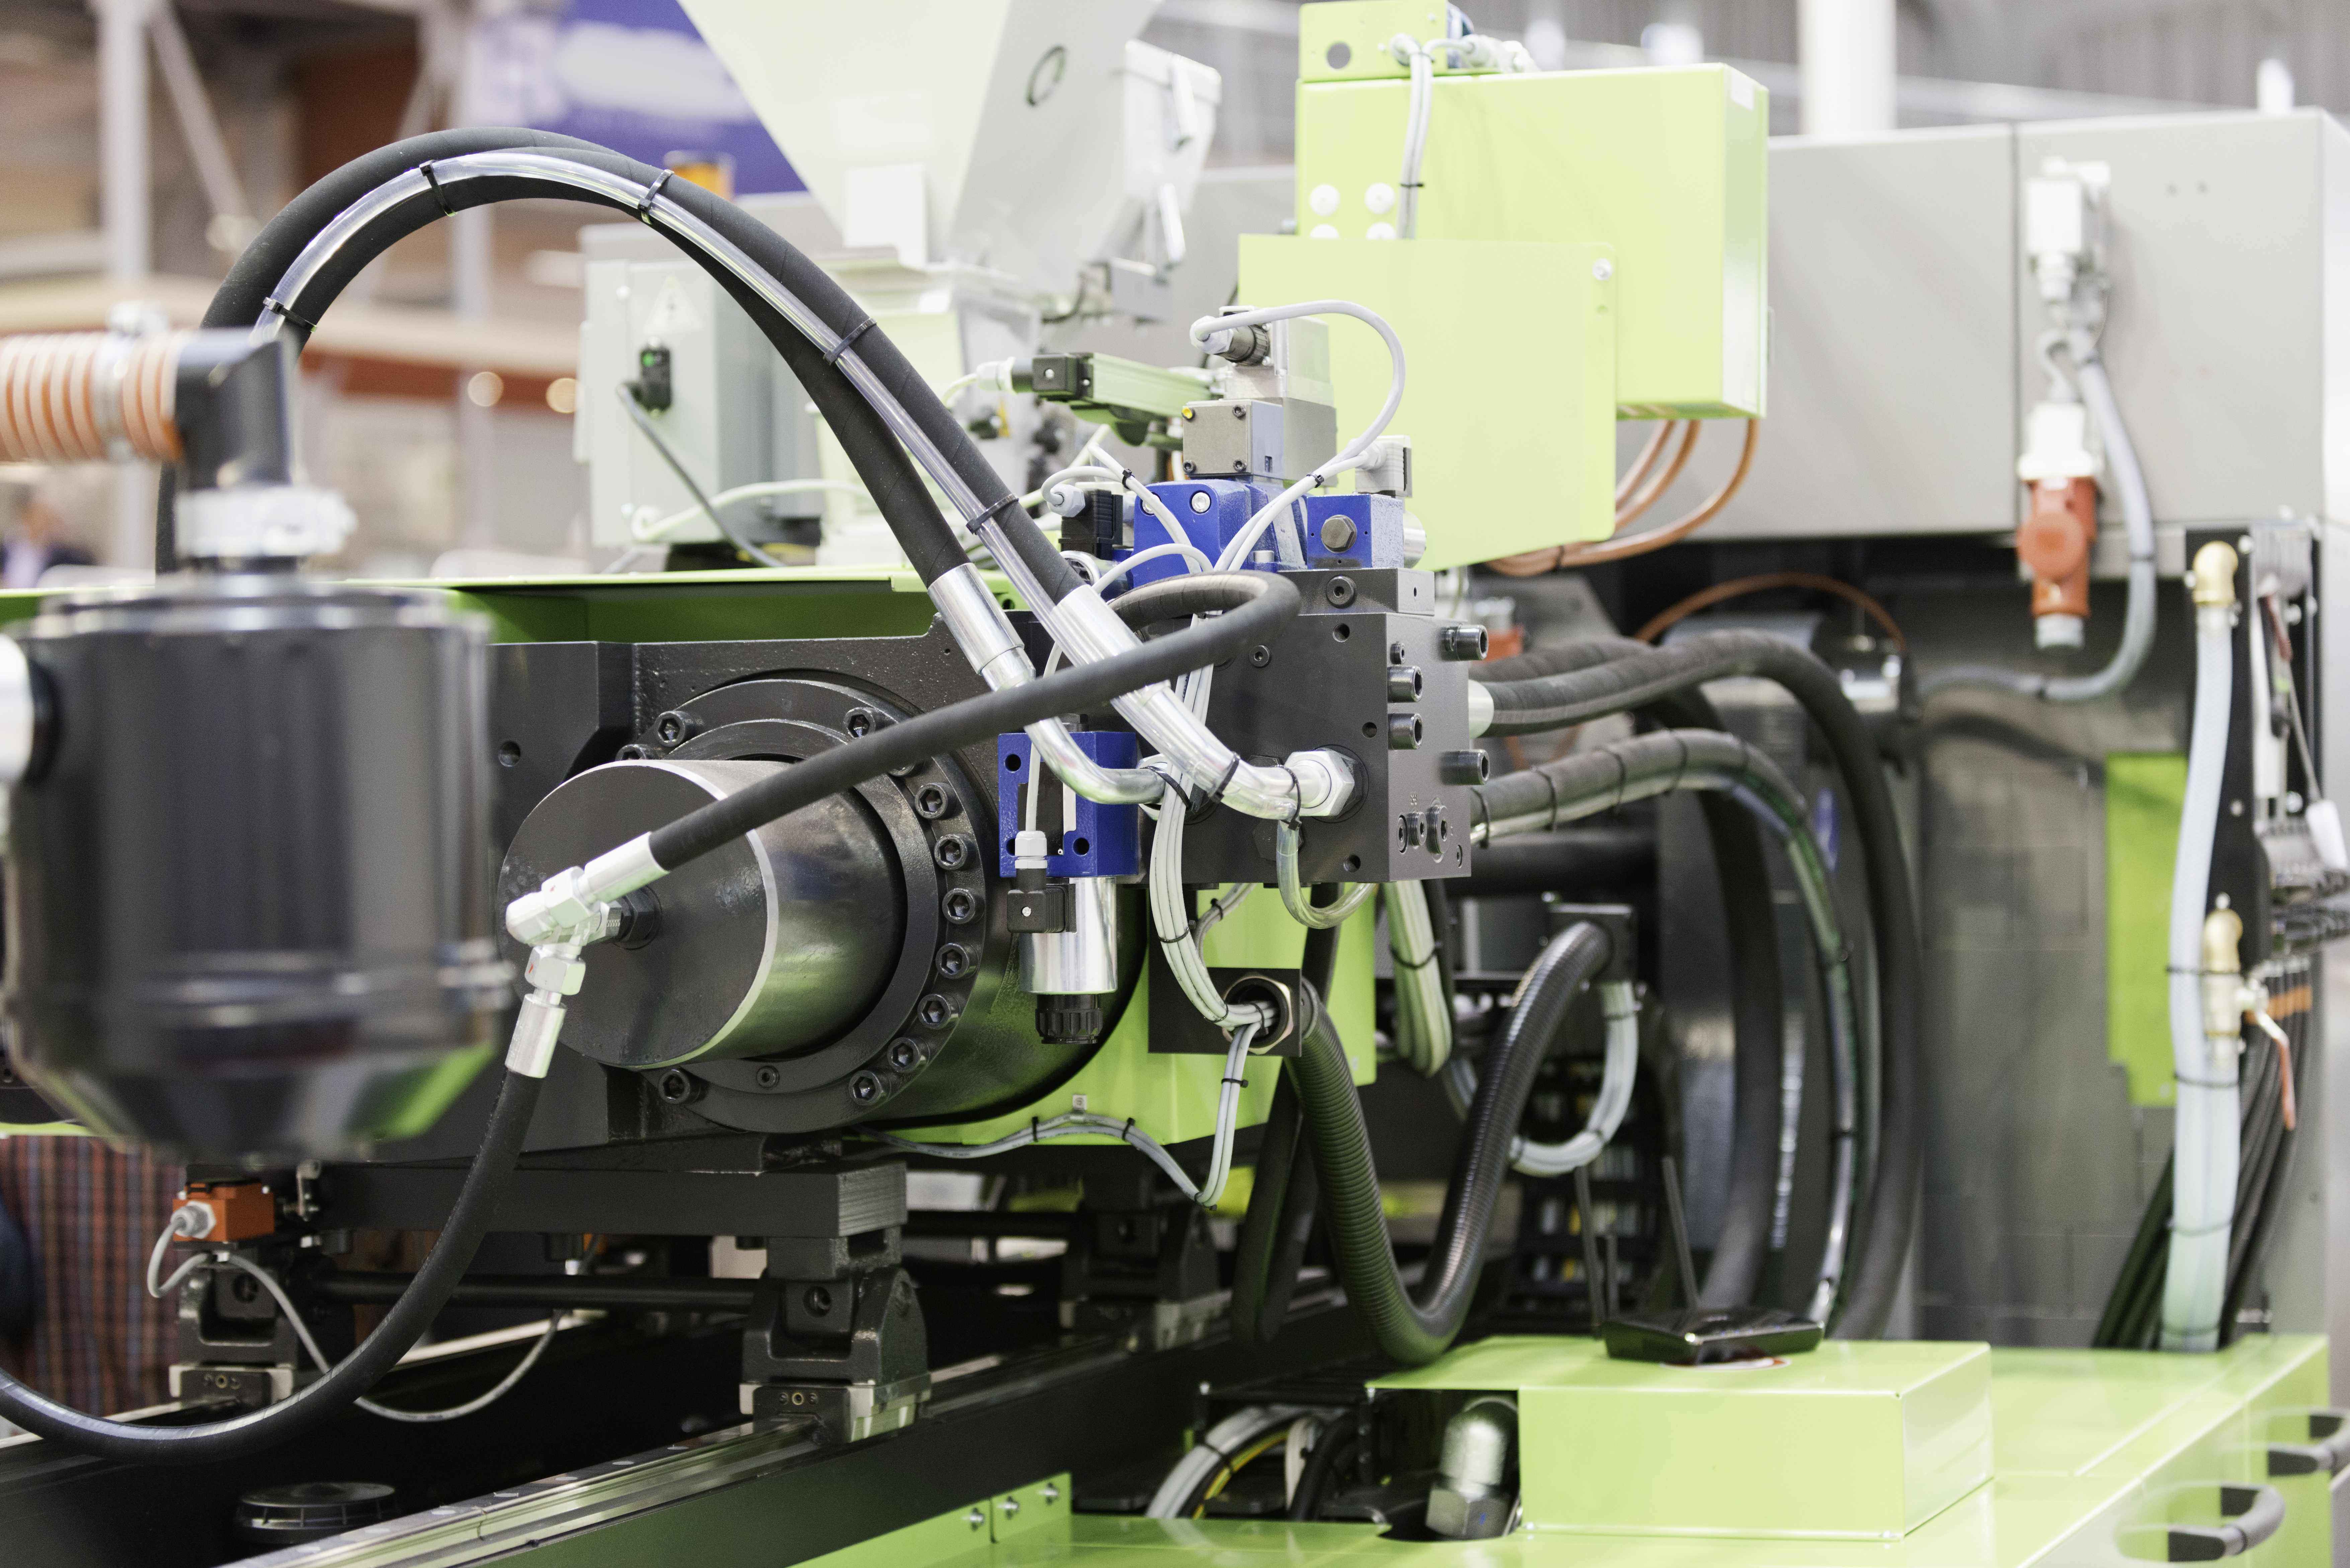 Harmonization of Injection Molding Safety—PLASTICS' Perspective